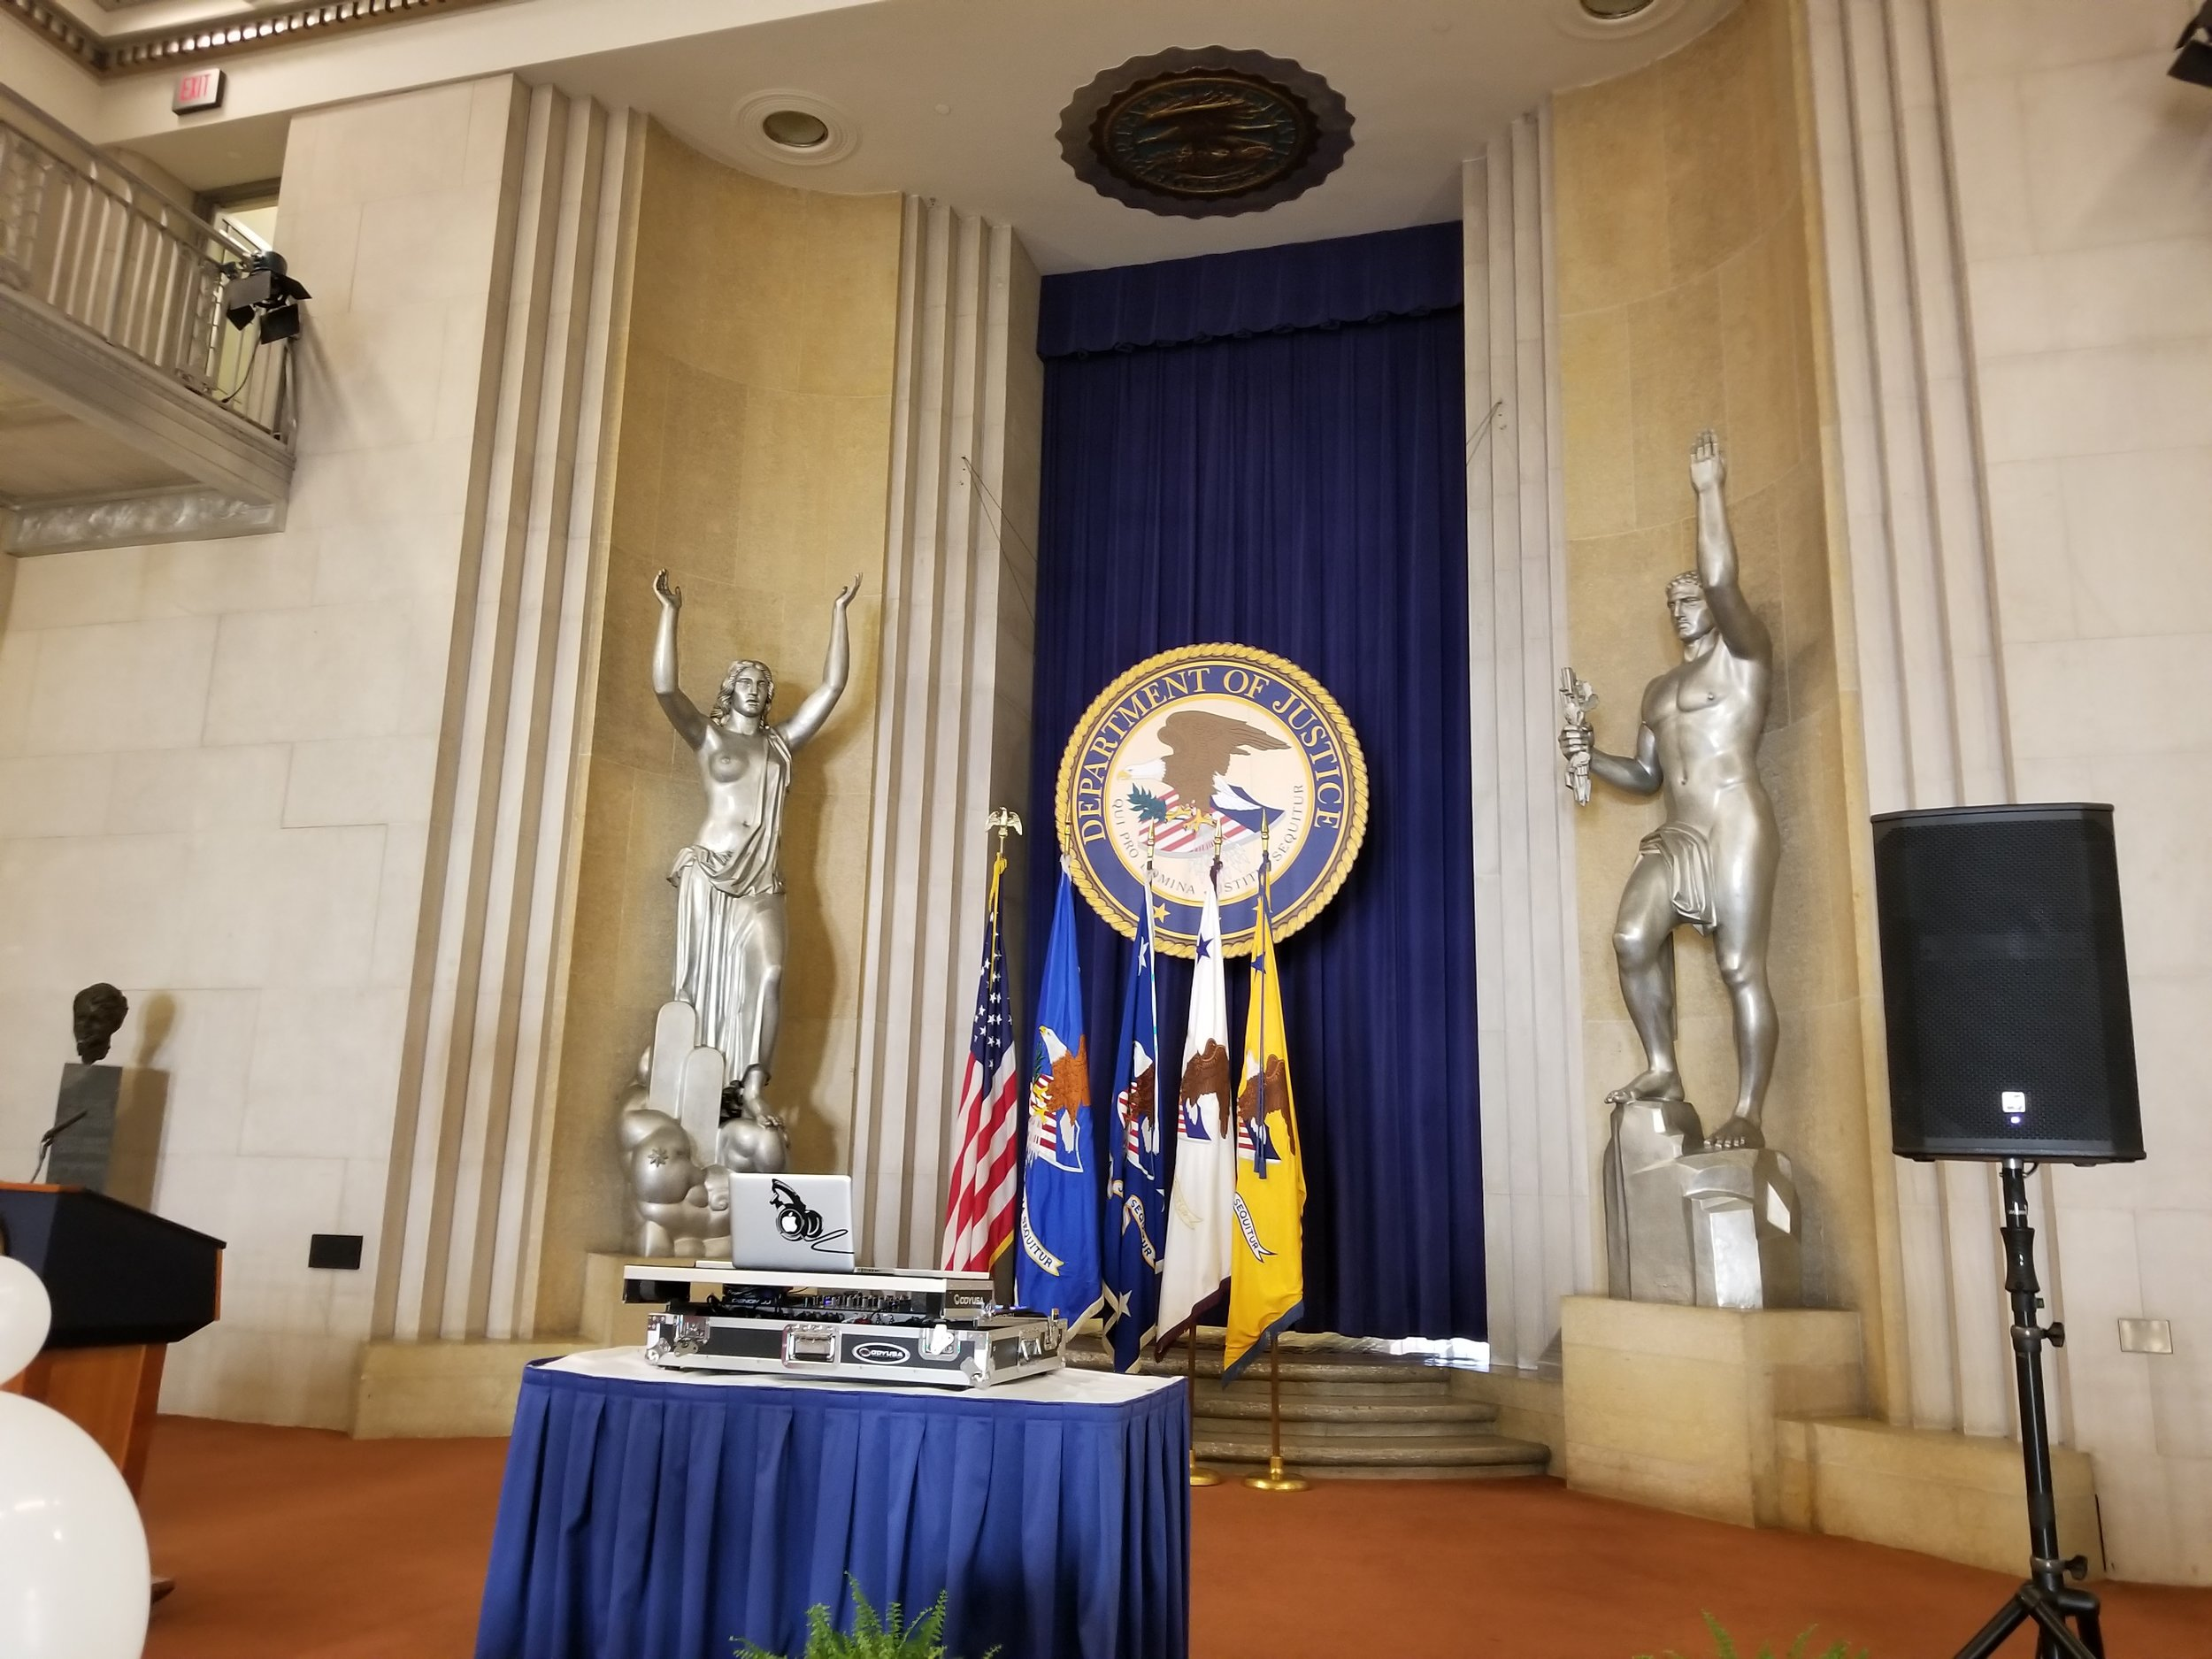 Setting up to entertain at the Main Justice building in Washington D.C. to entertain hard working federal employees pro bono.